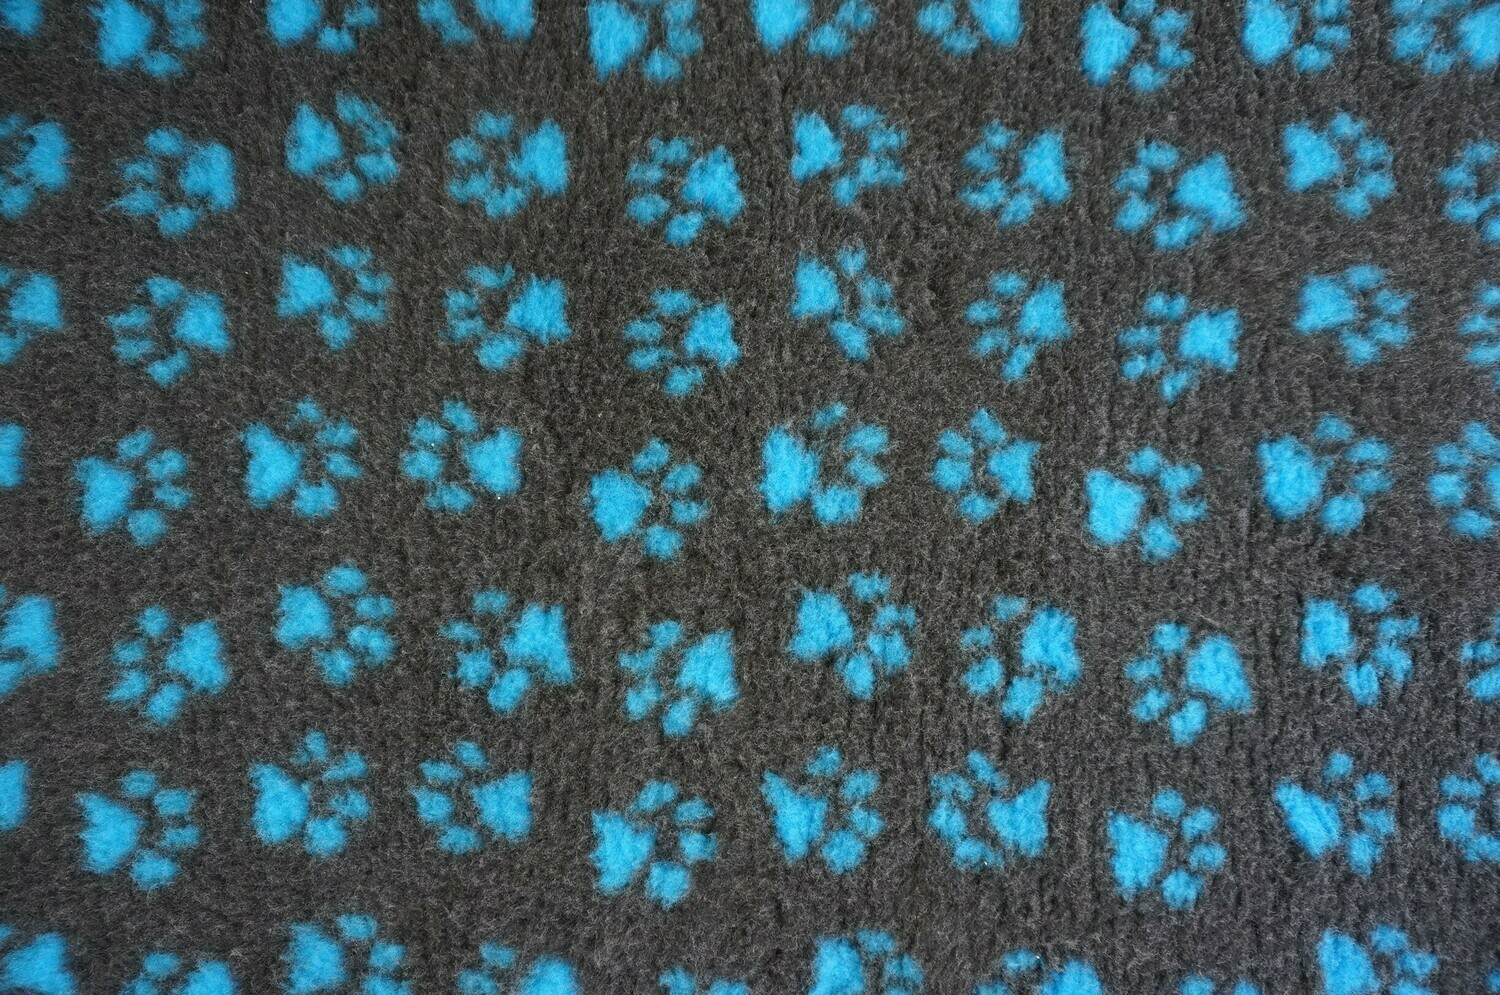 (Single Sheets) Premium - Non Slip Backing : Charcoal with Teal Blue Paws - Ref : (6380)